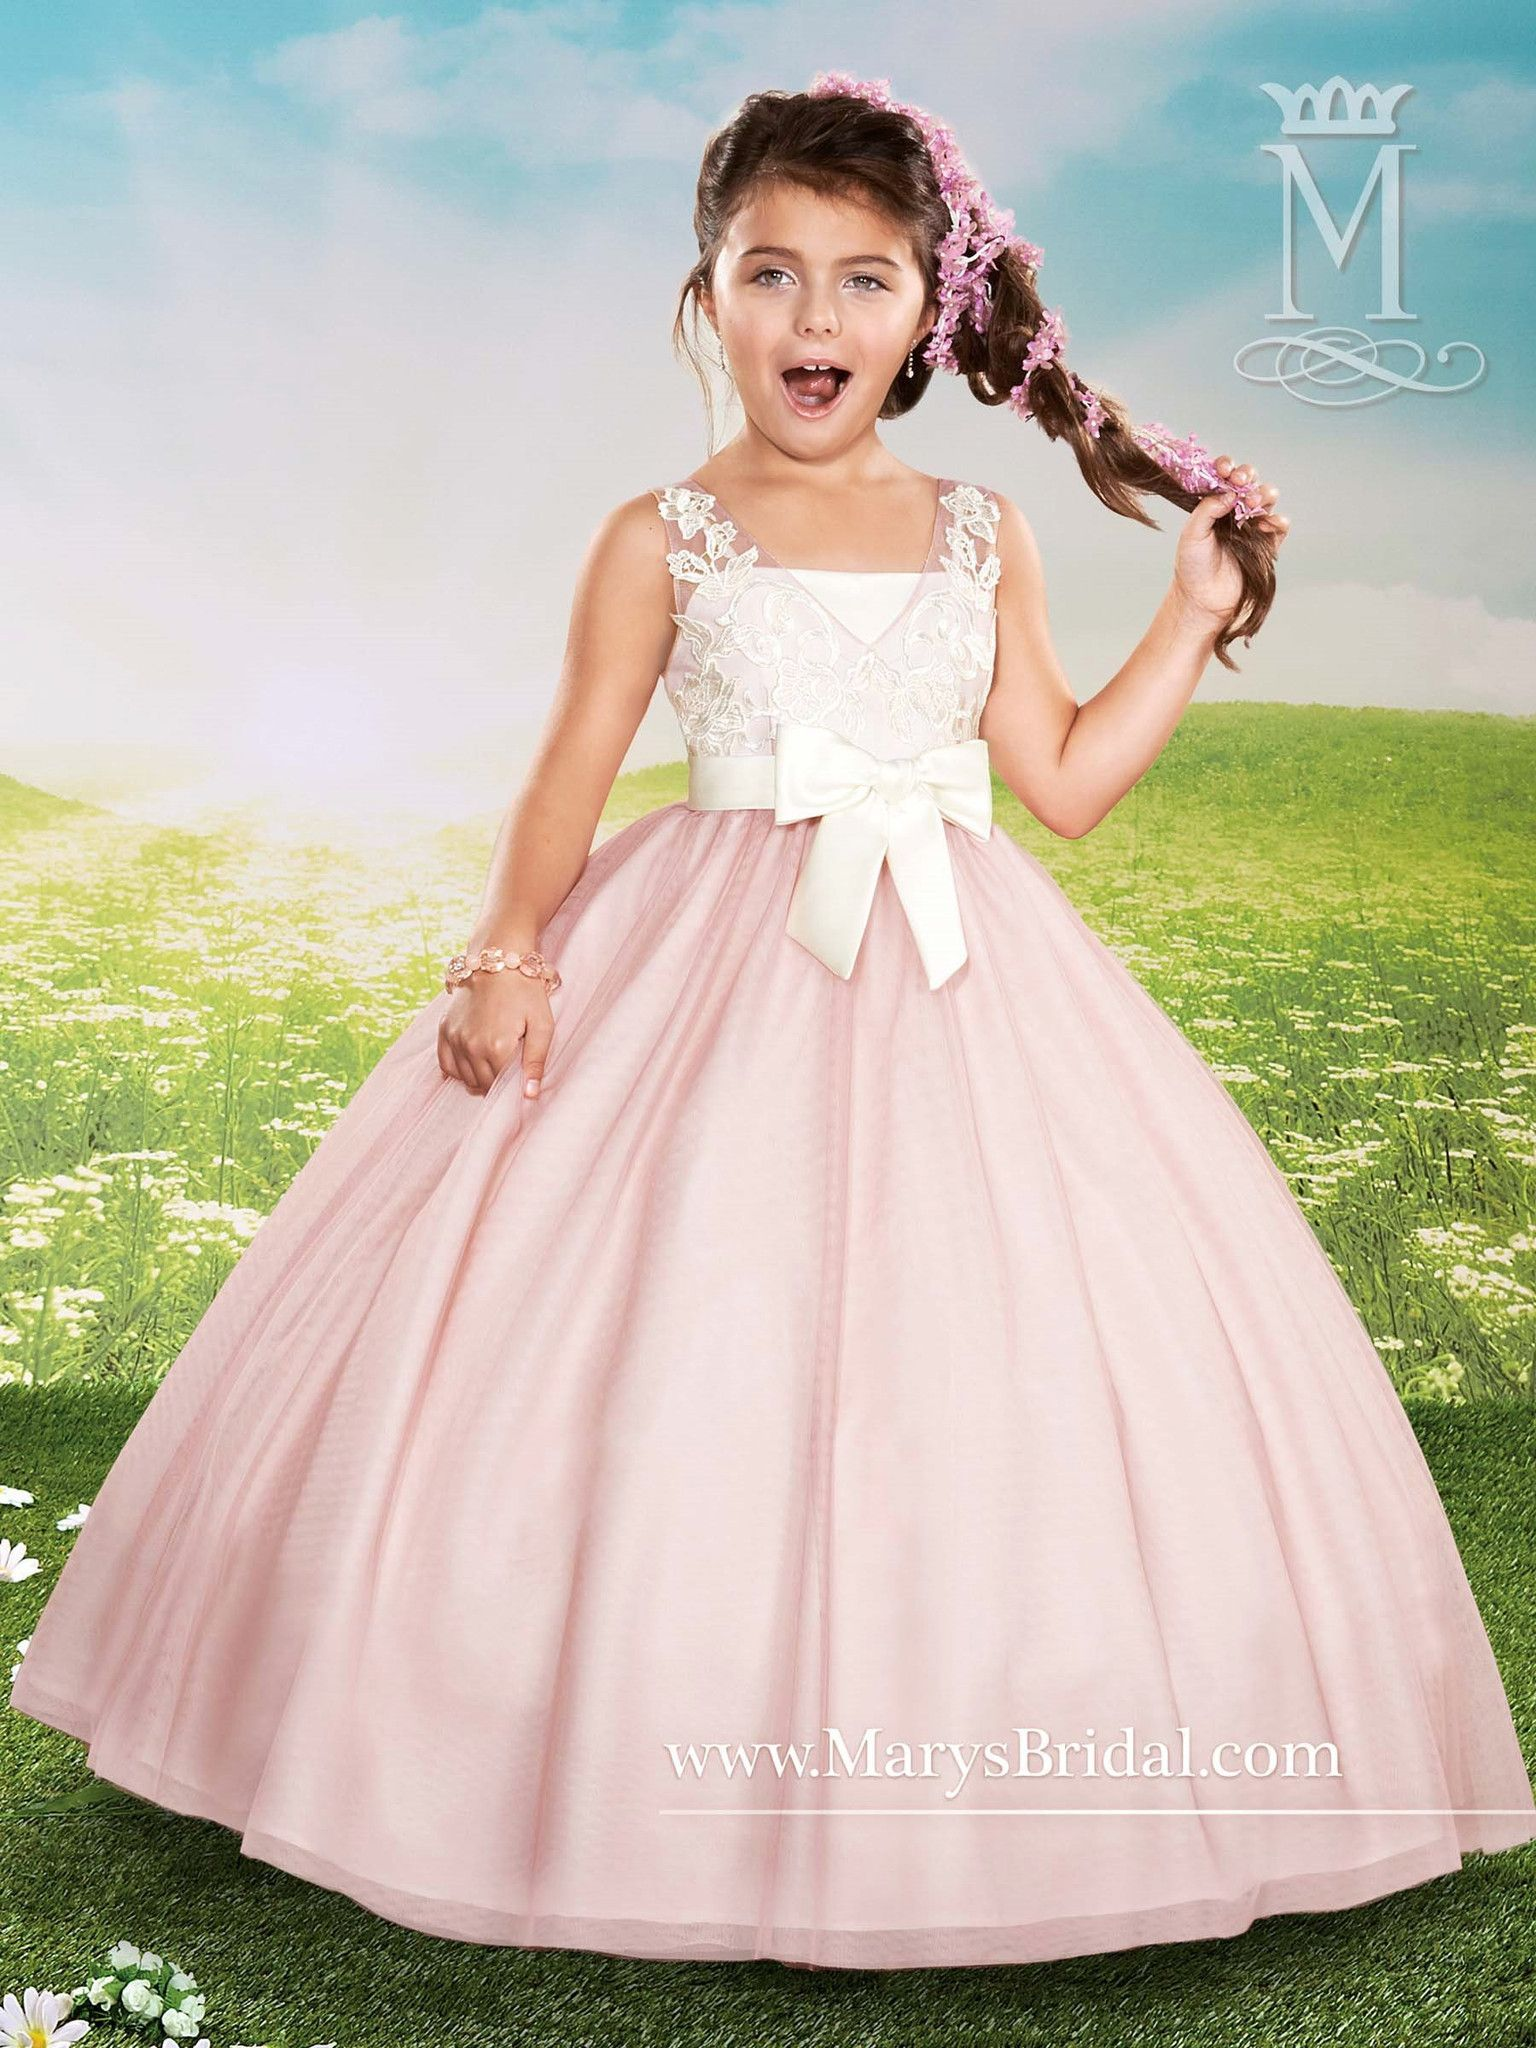 7c930ce38 Sleeveless Tulle/Lace Flower Girl Dress by Mary's Bridal Cupids F436 Lace Flower  Girls,